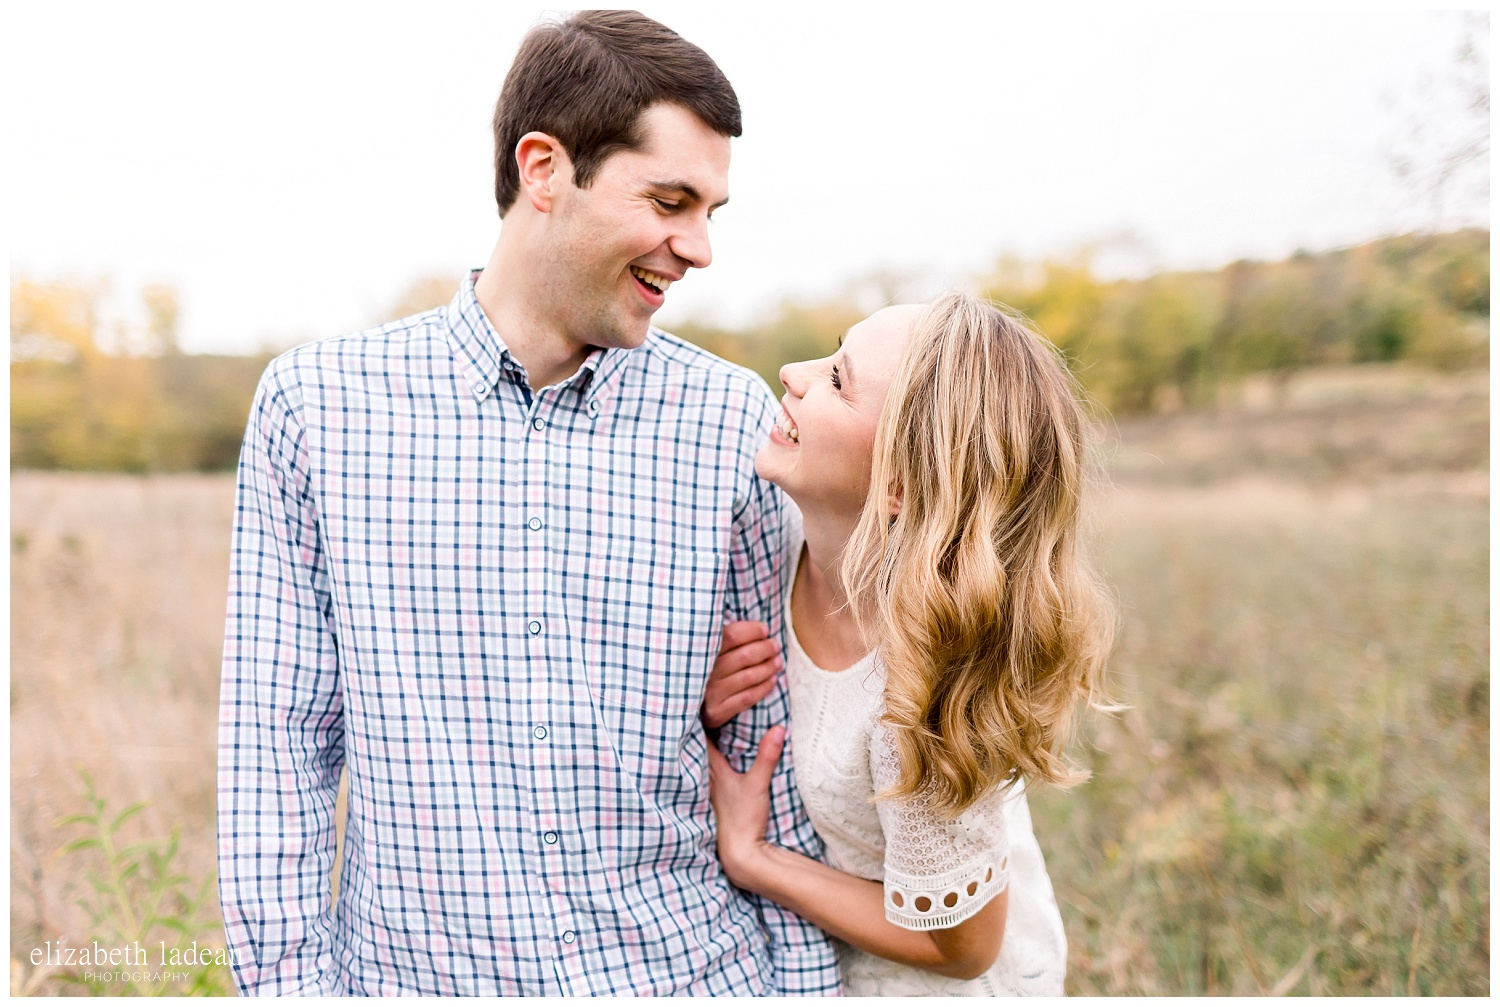 Colorful-Fall-Engagement-Photos-in-KC-C+B-2018-elizabeth-ladean-photography-photo_1779.jpg